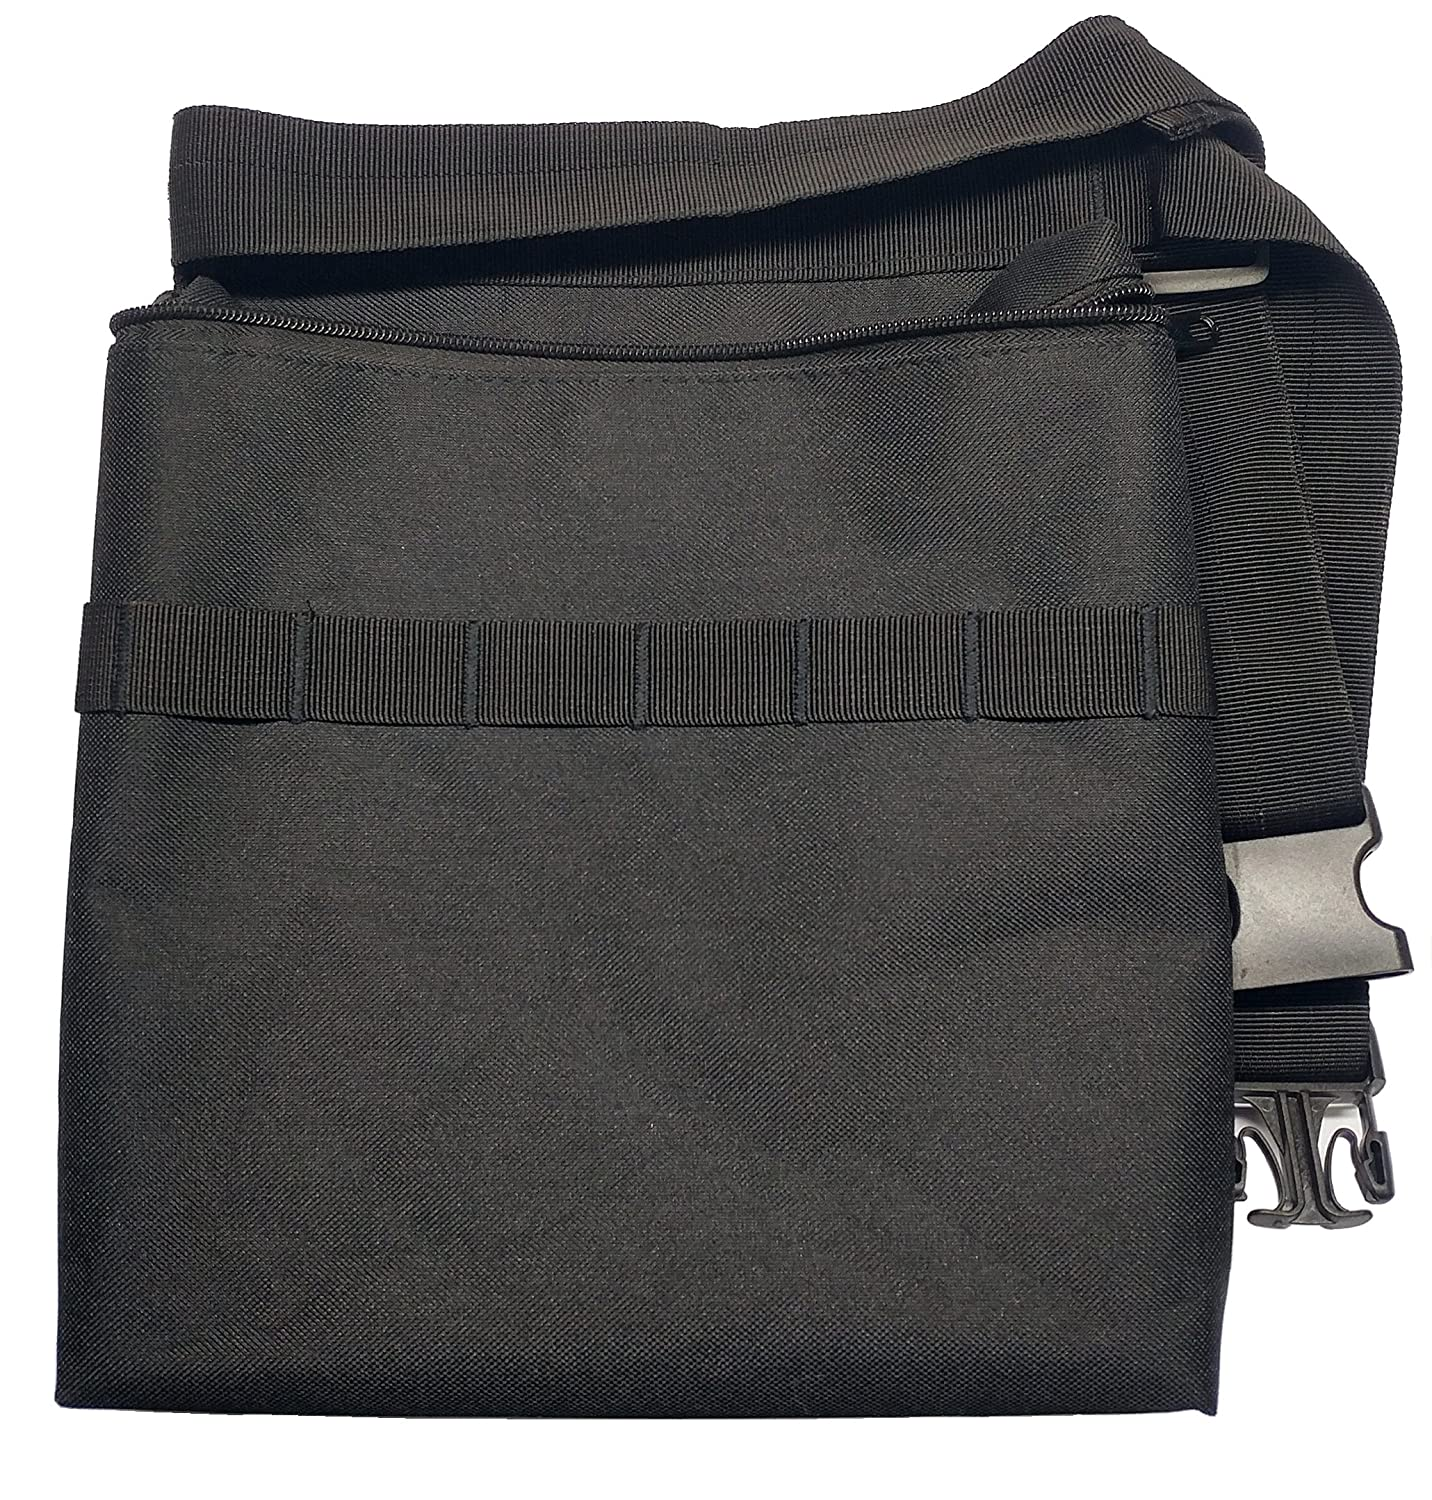 Epic Gear USA Epic Gear Black Metal Detecting Diggers Pouch with Interior Pocket - Adjustable to fit up to 48 Waist (Standard)